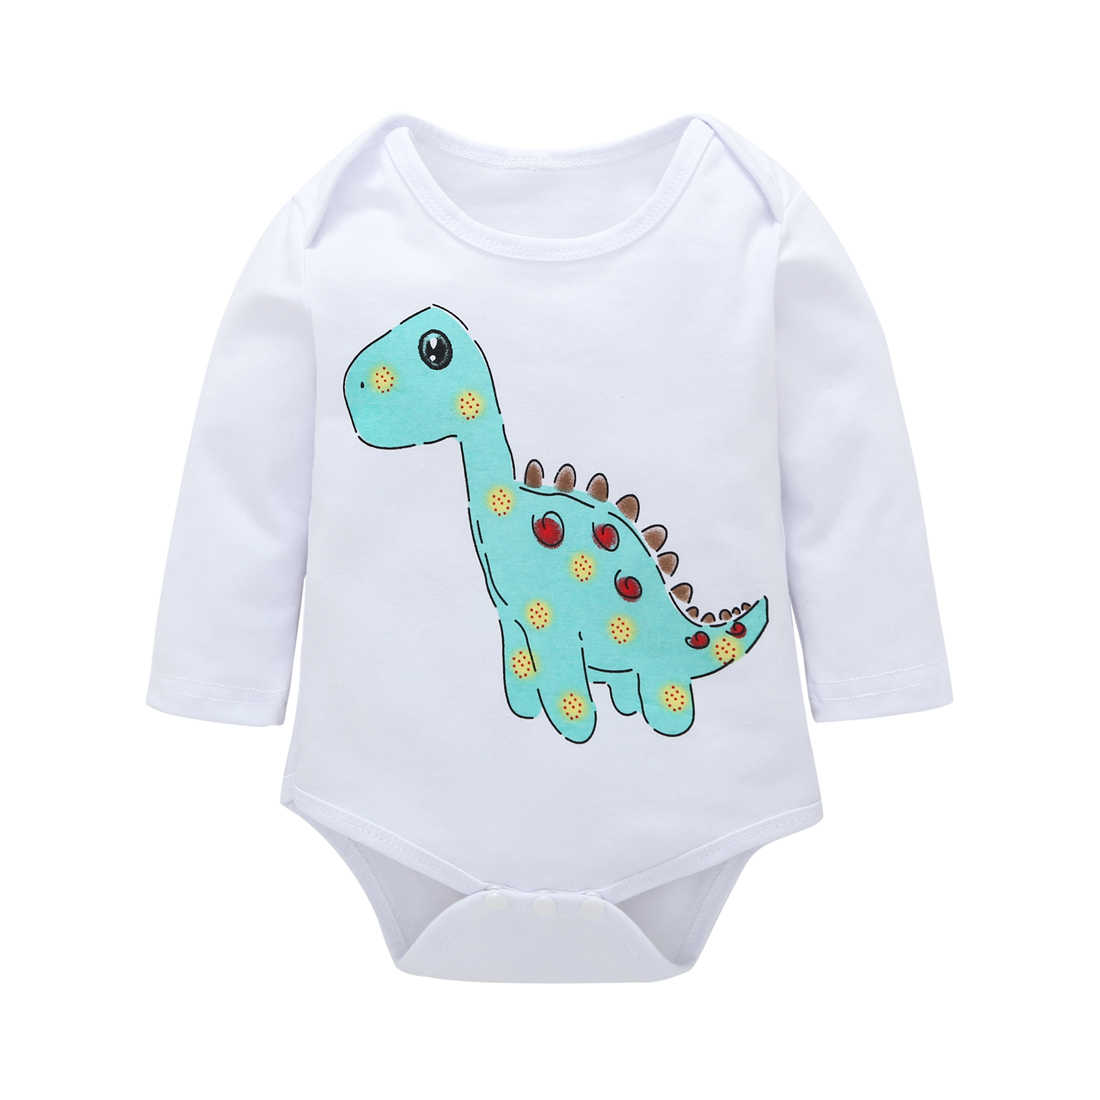 0-18M Newborn Baby Girl Rompers Autumn Baby Boy Clothes Cotton Summer Jumpsuit Infant Playsuit Spring Dinosaur Baby Romper White